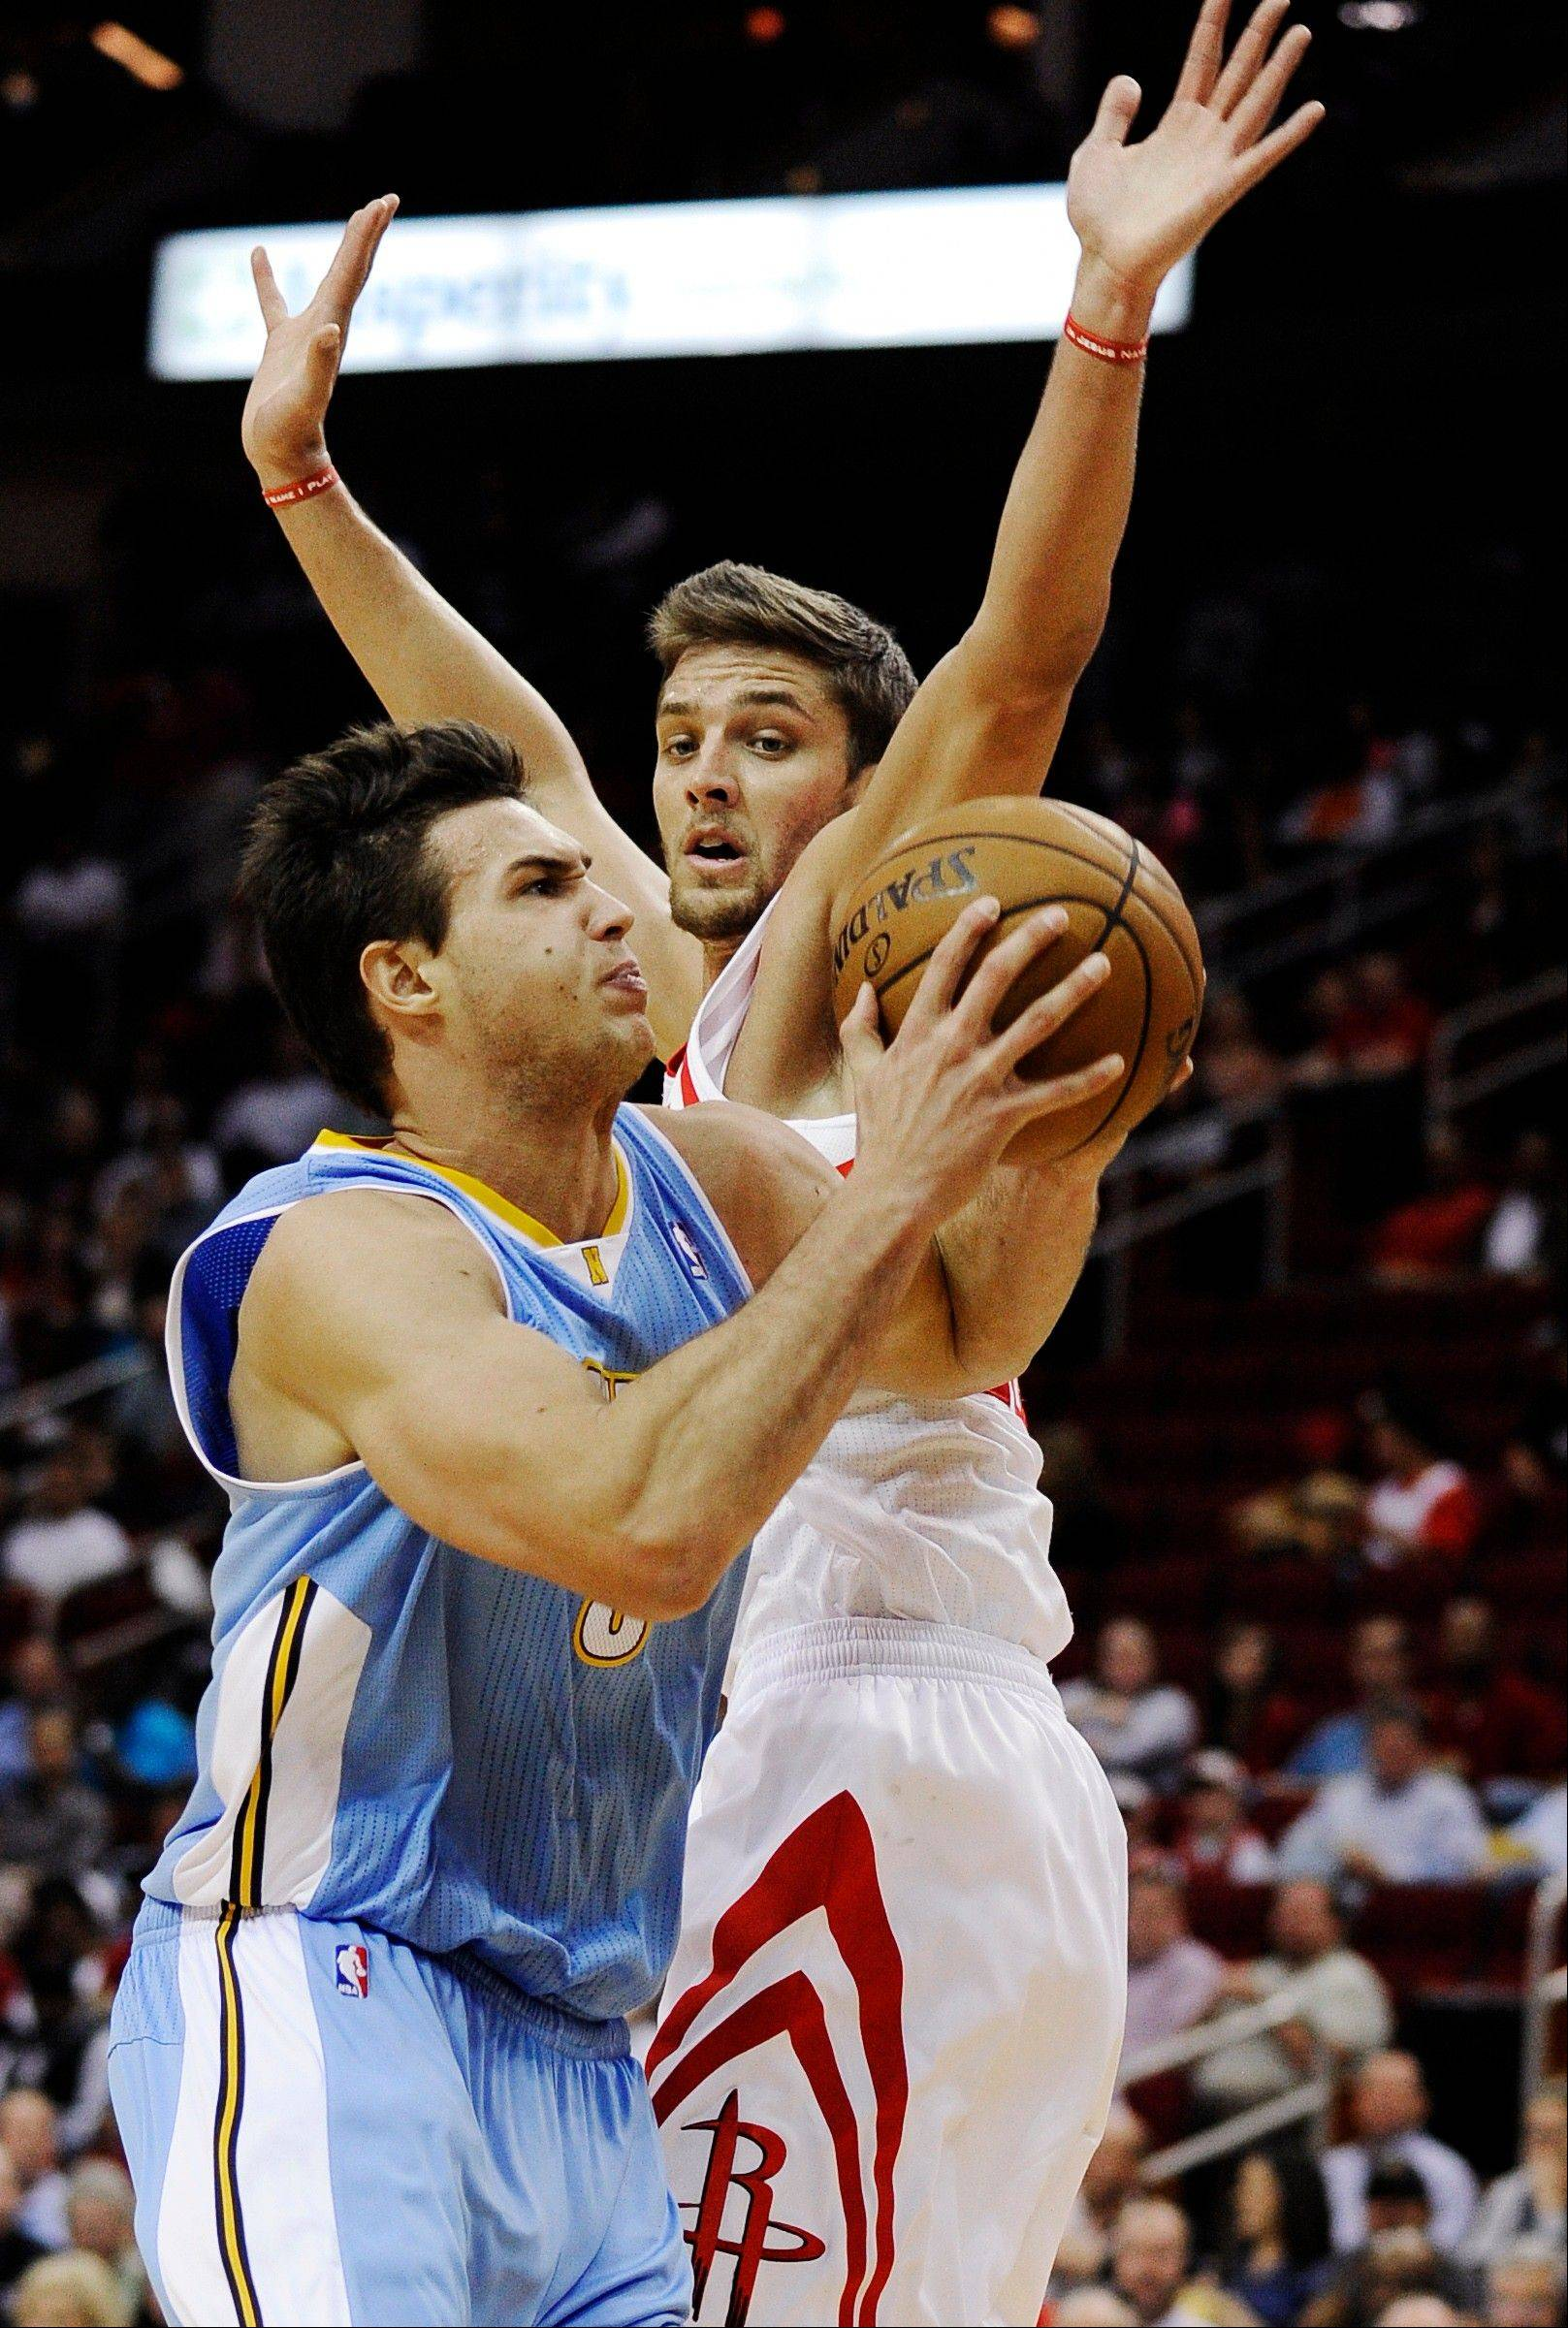 The Denver Nuggets' Danilo Gallinari, left, drives to the basket against Houston Rockets' Chandler Parsons Wednesday during the first half in Houston.